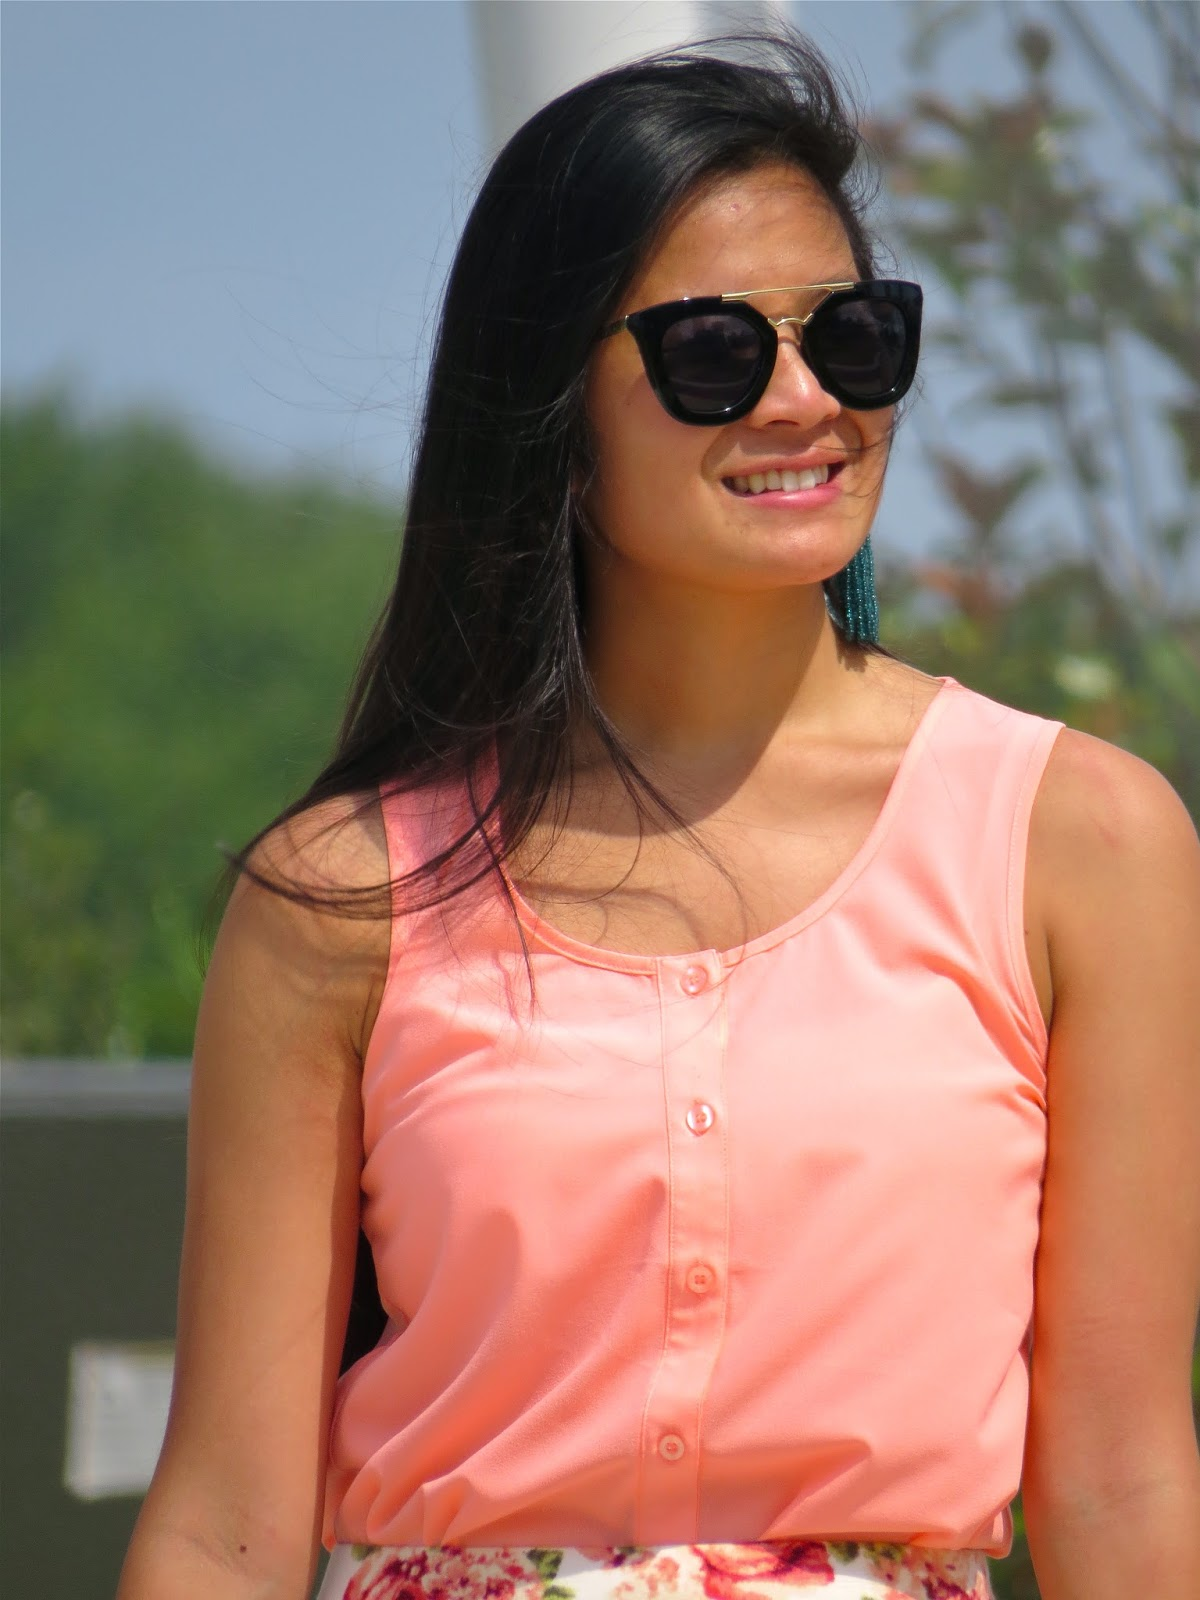 The perfect pink top for summer